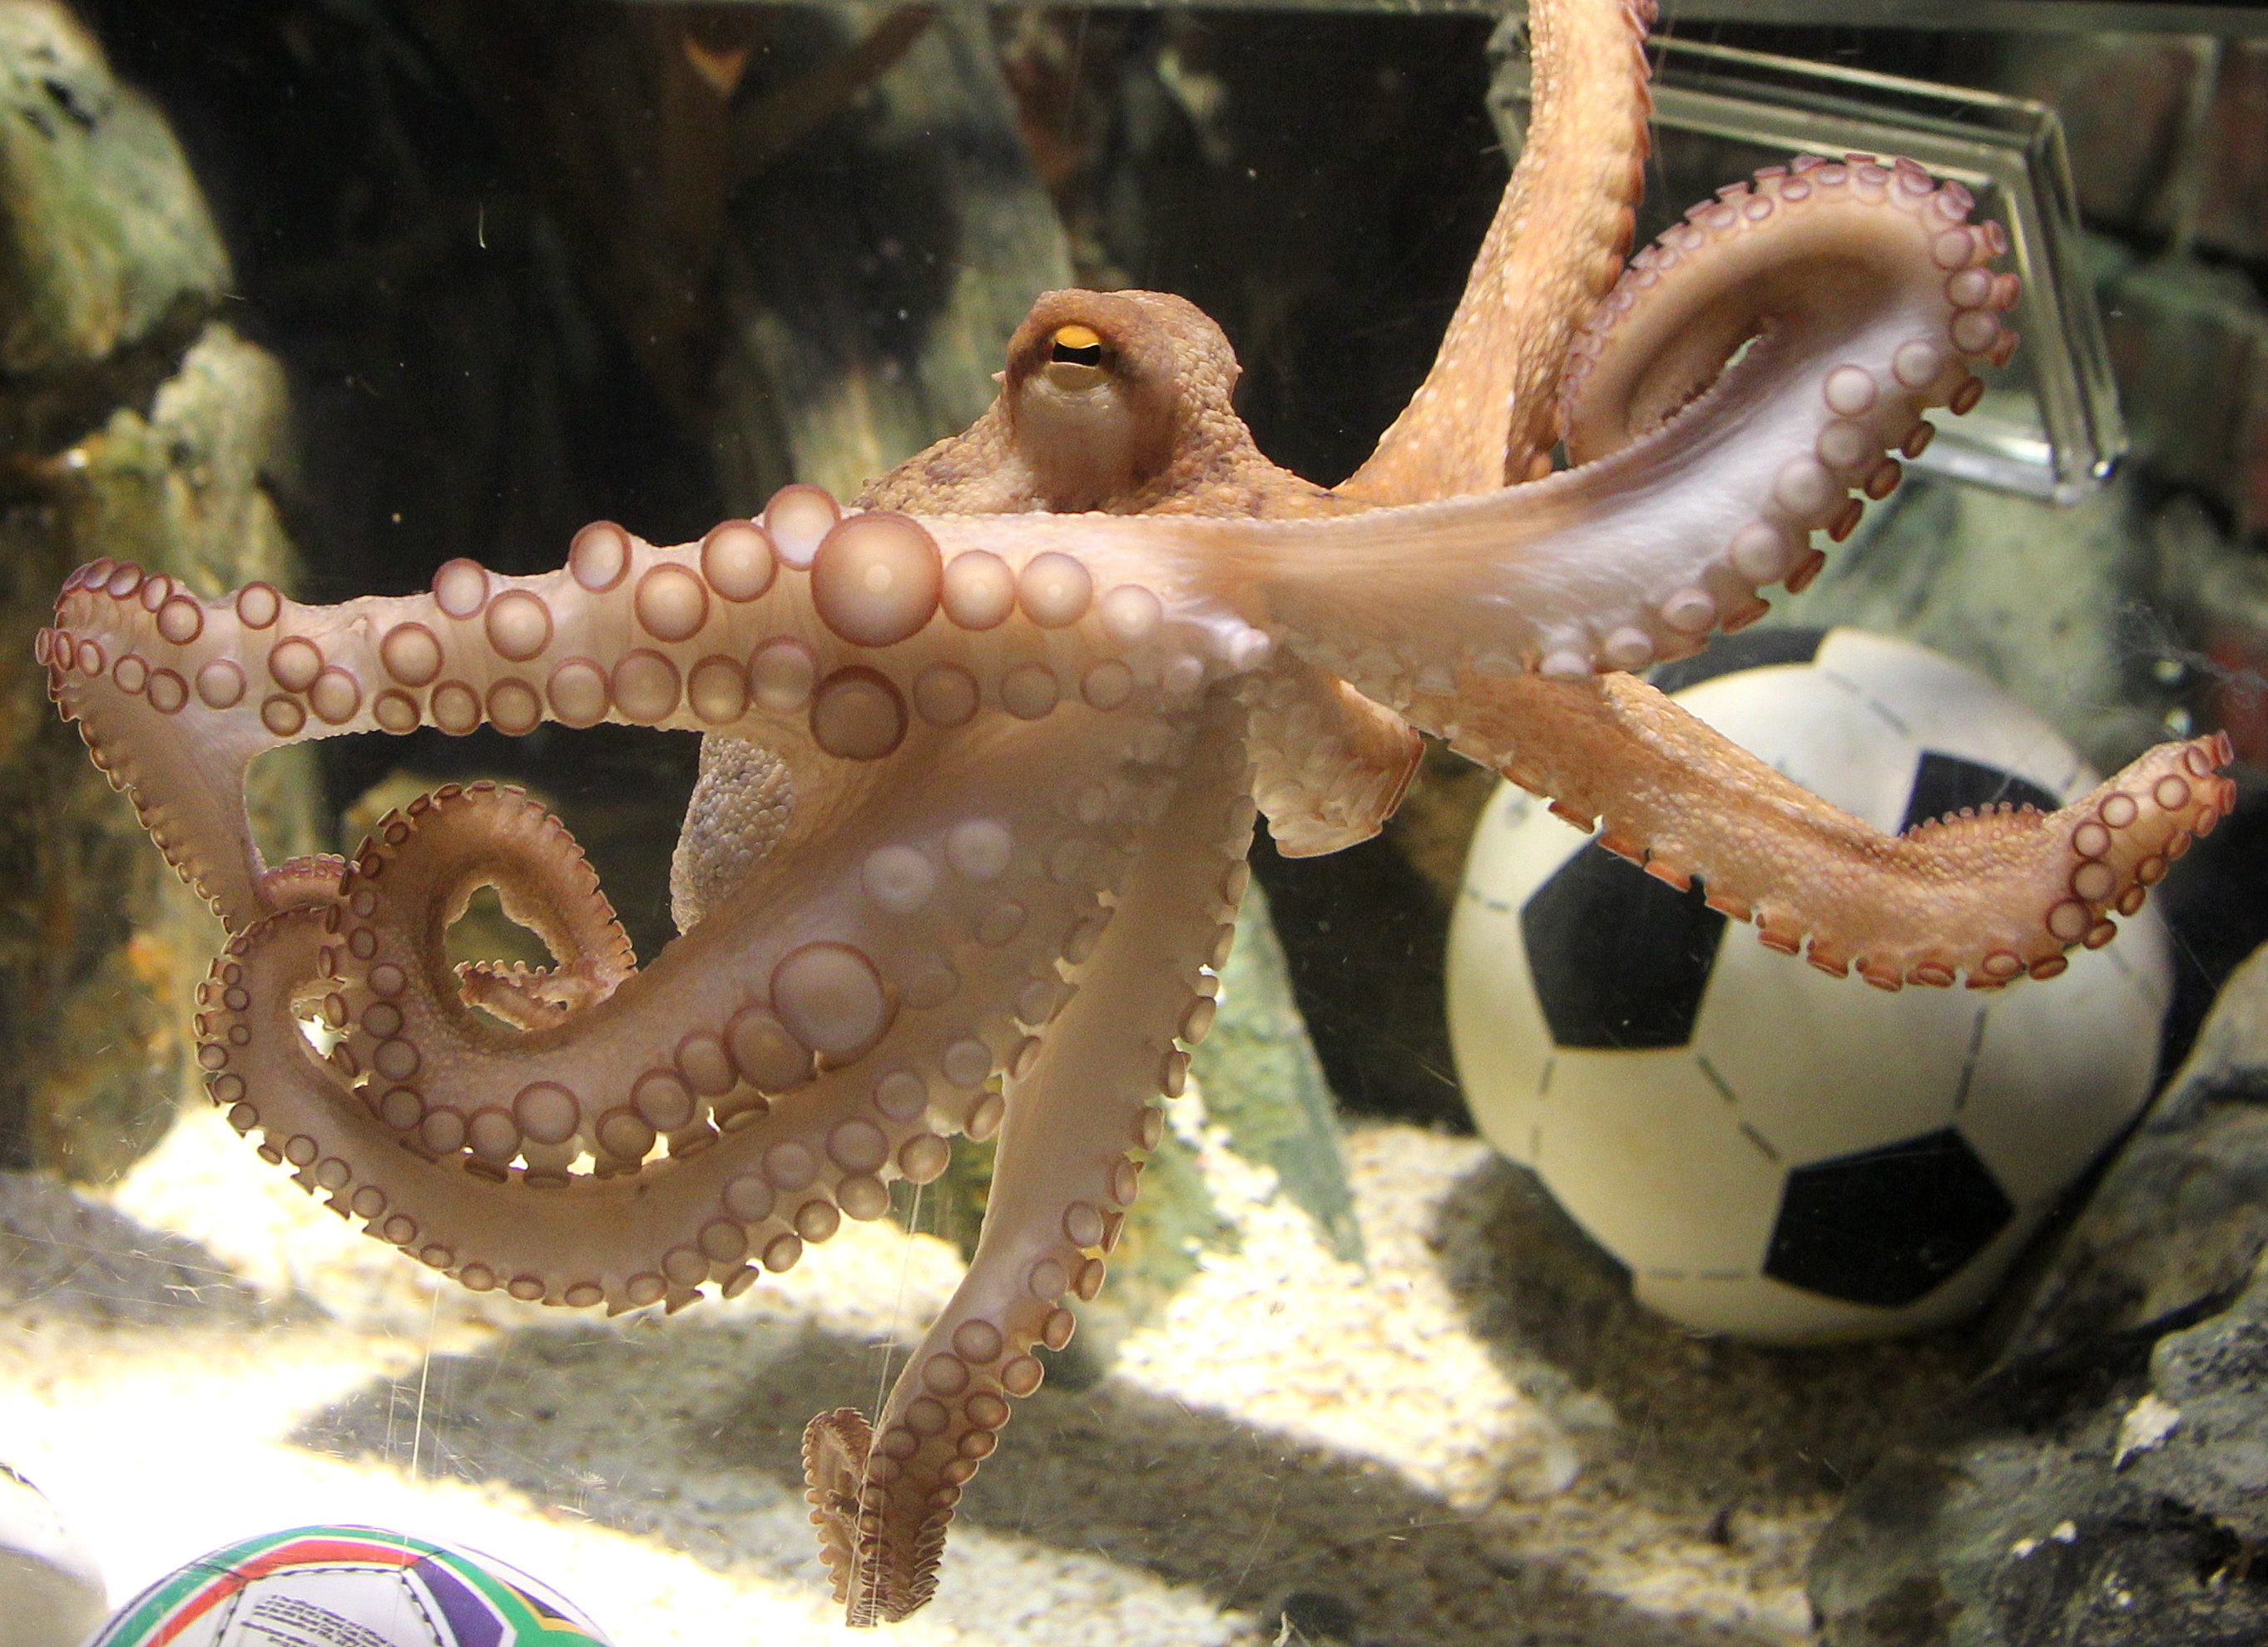 Japan's oracle octopus turned into sashimi